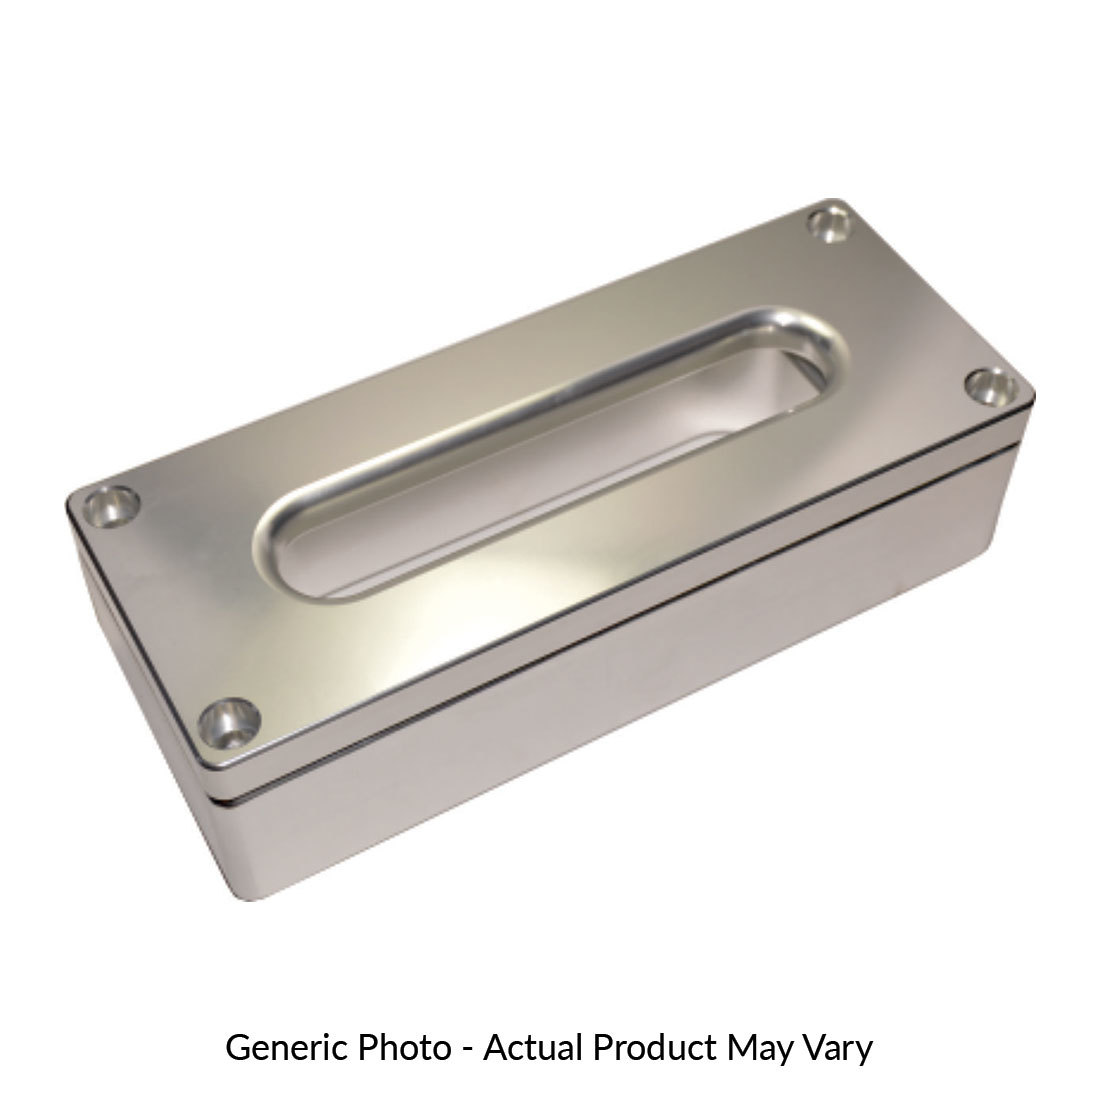 Alloy Fairlead With 60mm Spacer - Silver